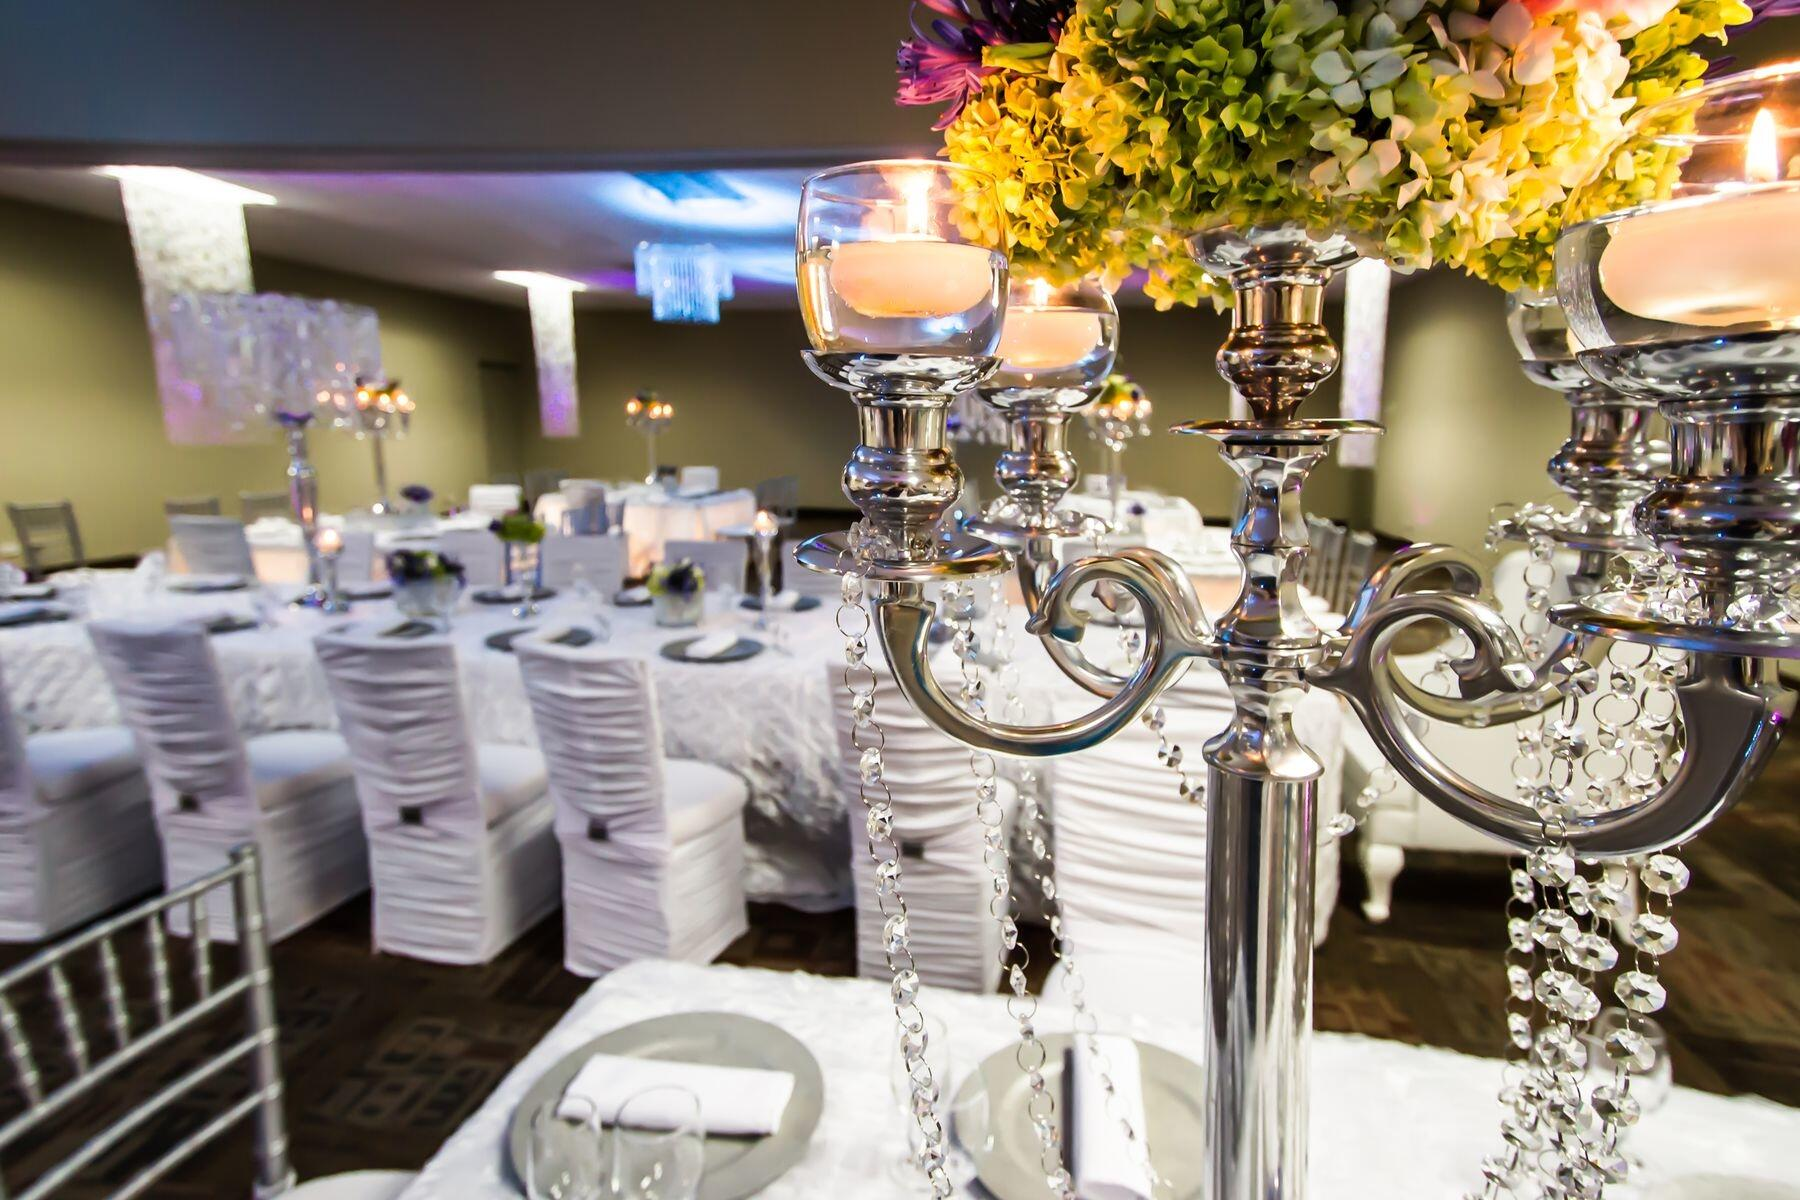 Candelabra centerpiece topped with floral arrangement